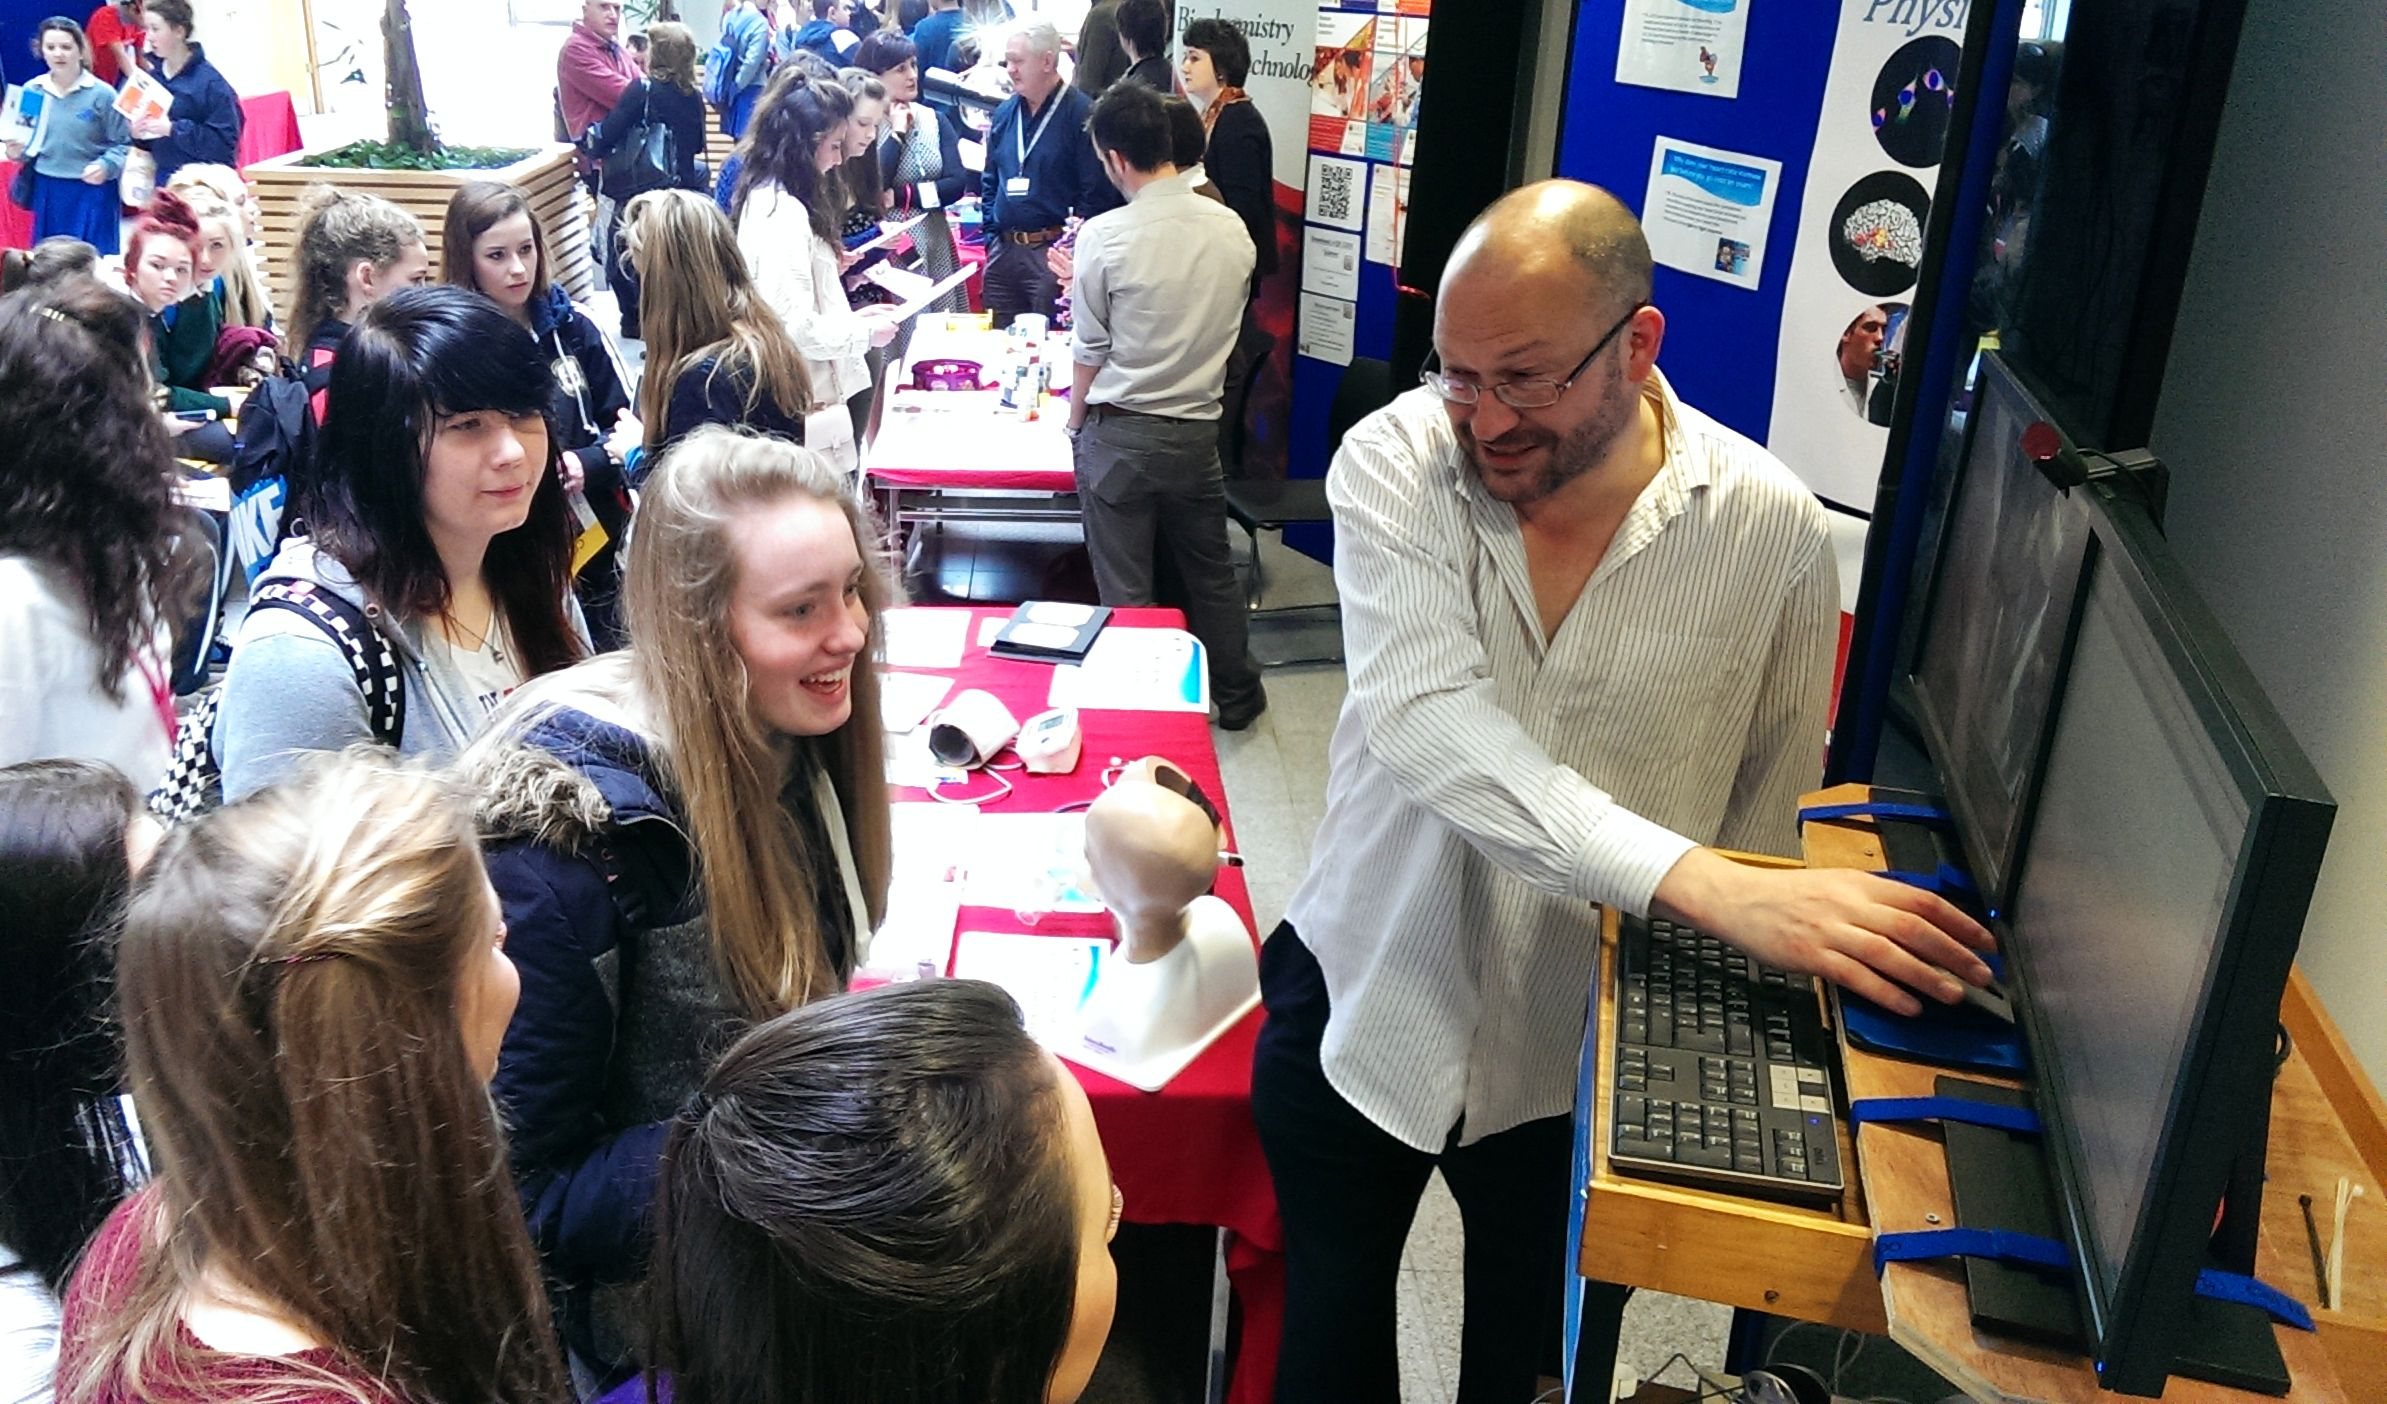 Physiology Degree showcased at Spring Open Day